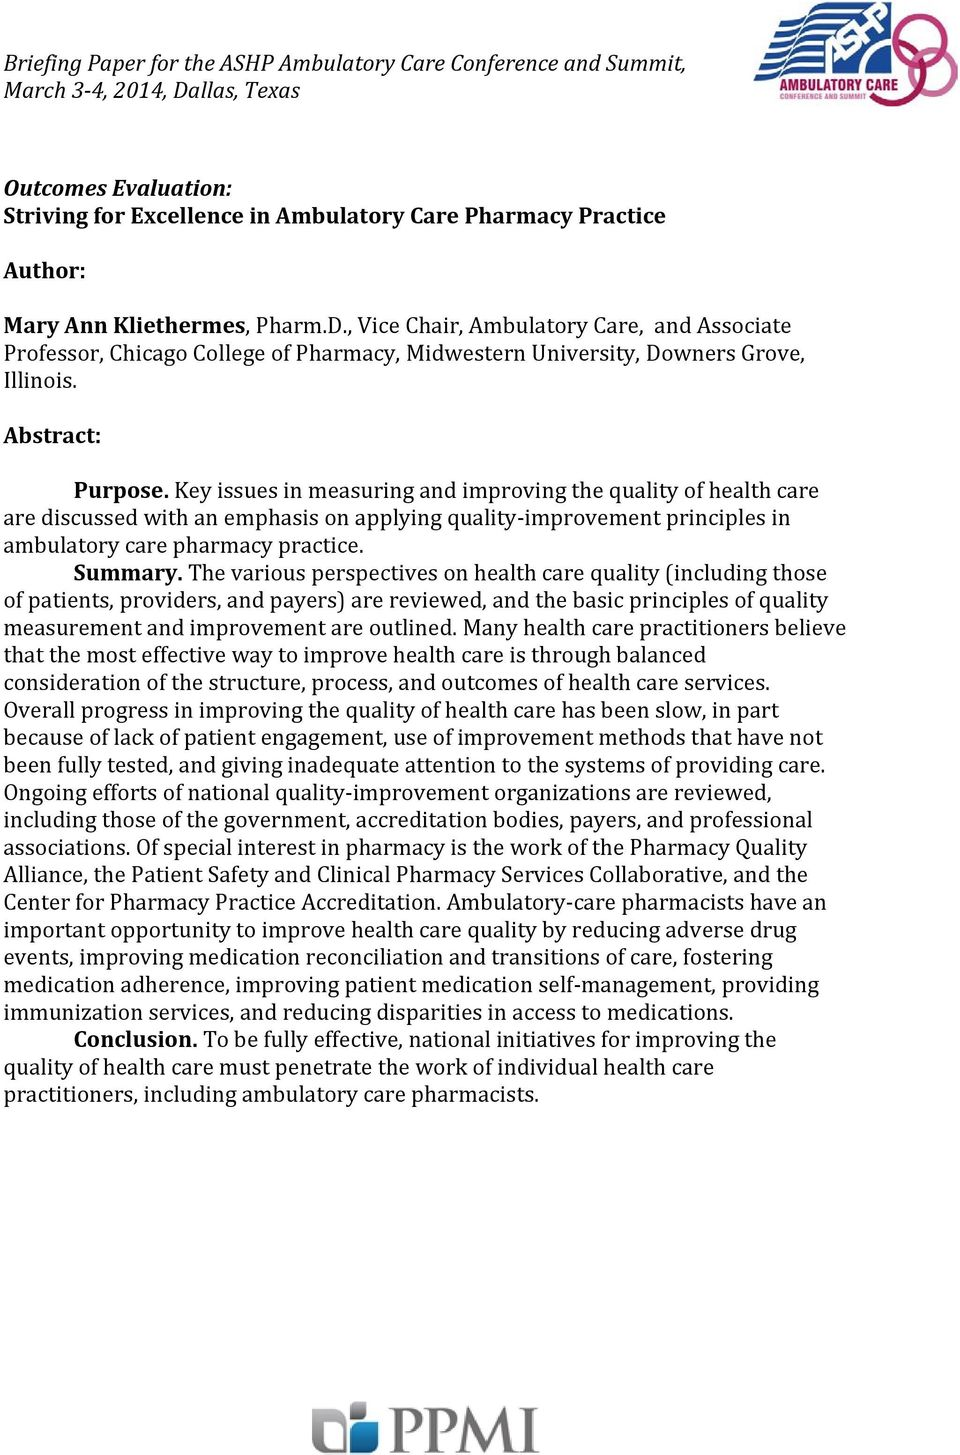 Key issues in measuring and improving the quality of health care are discussed with an emphasis on applying quality-improvement principles in ambulatory care pharmacy practice. Summary.